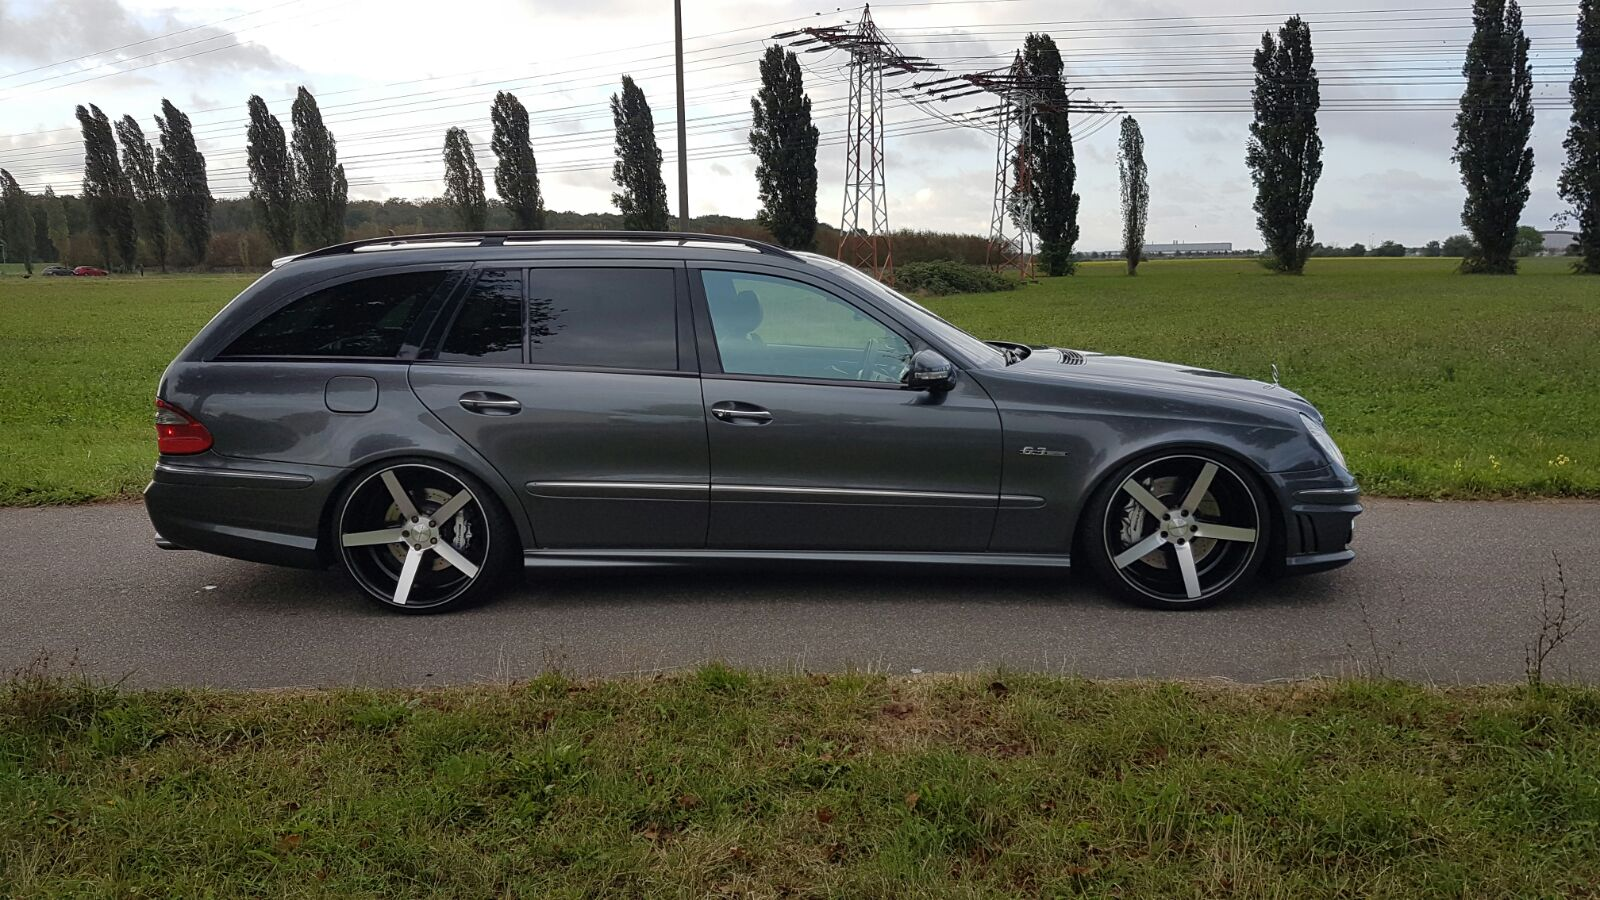 Mercedes Of Wilmington >> w211 e63 wagon - low, x-pipe, propane conversion - MBWorld.org Forums